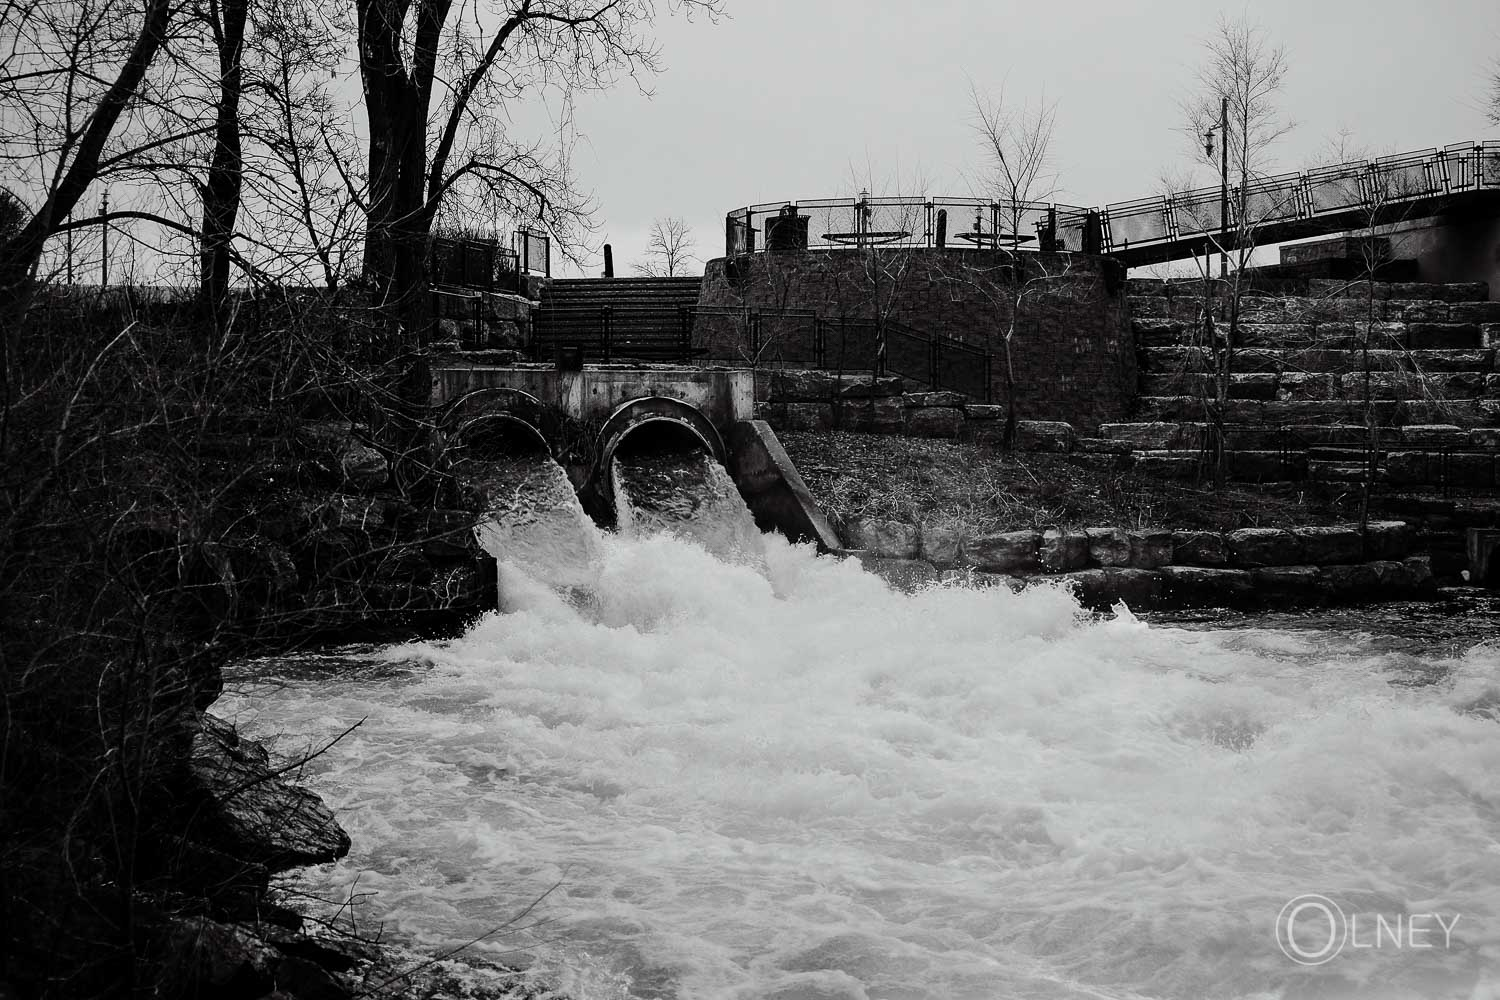 whitewater in Valleyfield